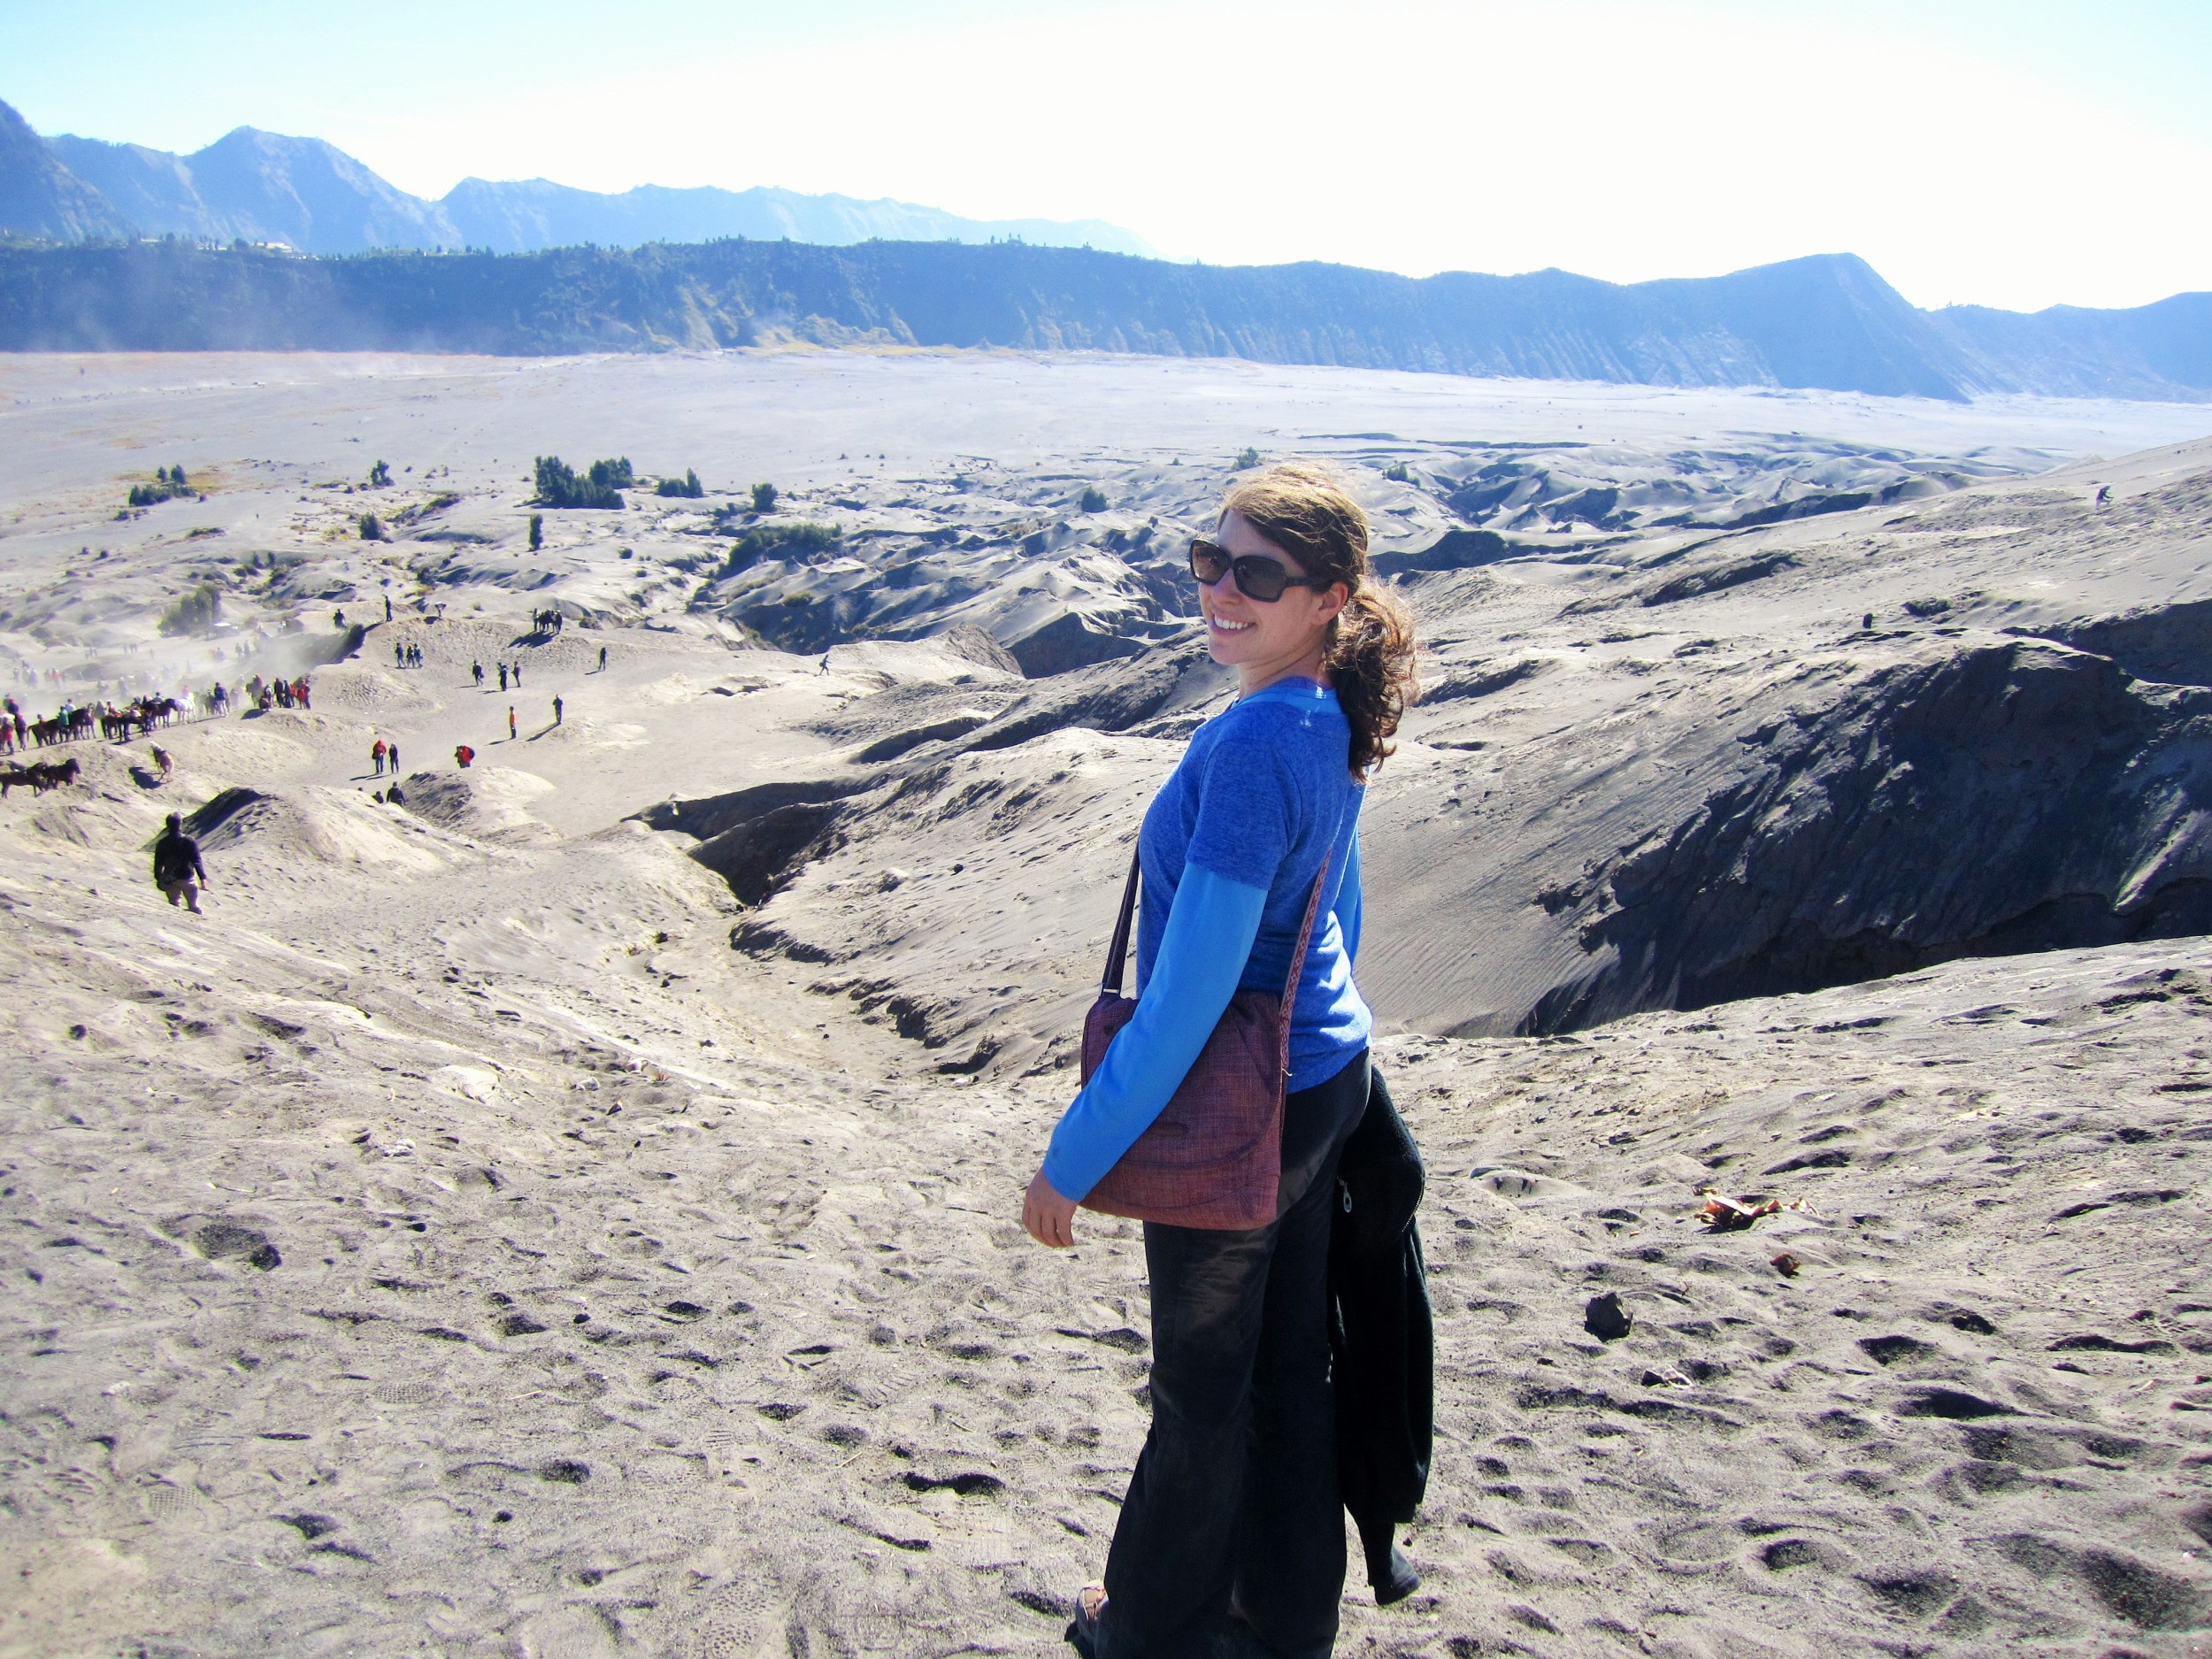 Walking through the sea of sand post climbing Mt. Bromo, part of the Tengger Massif